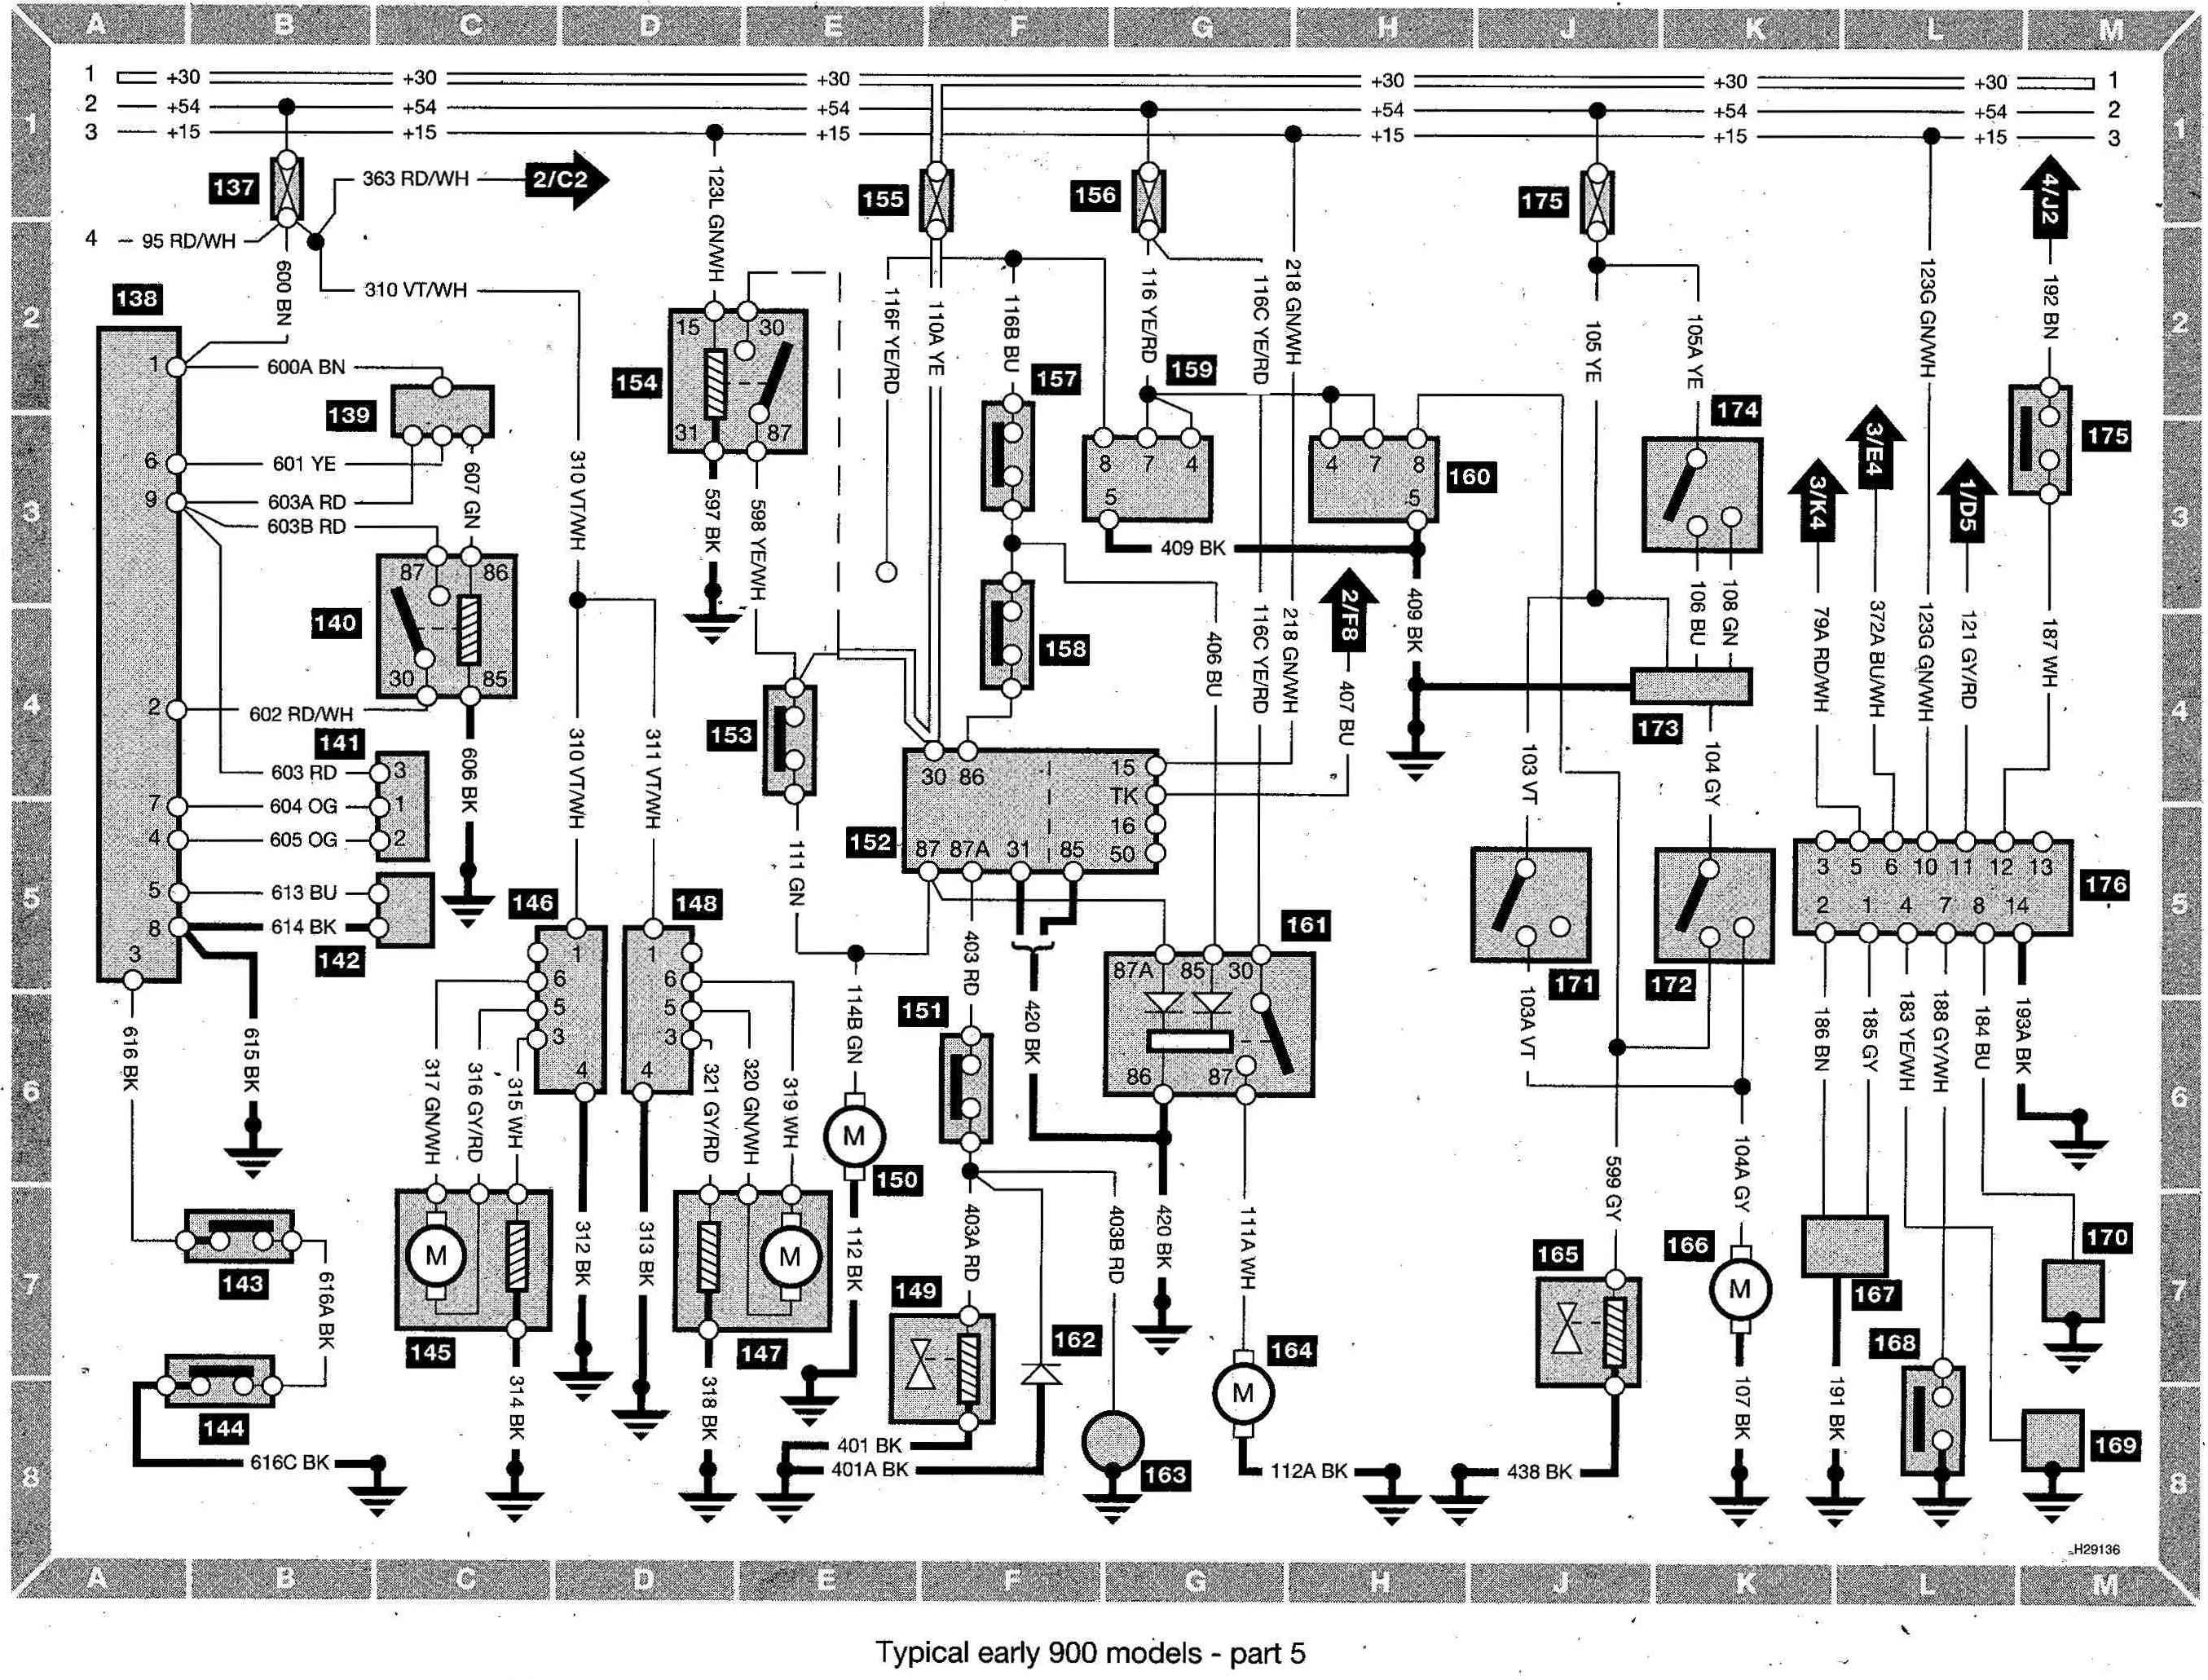 S Wiring diagram early models part 5